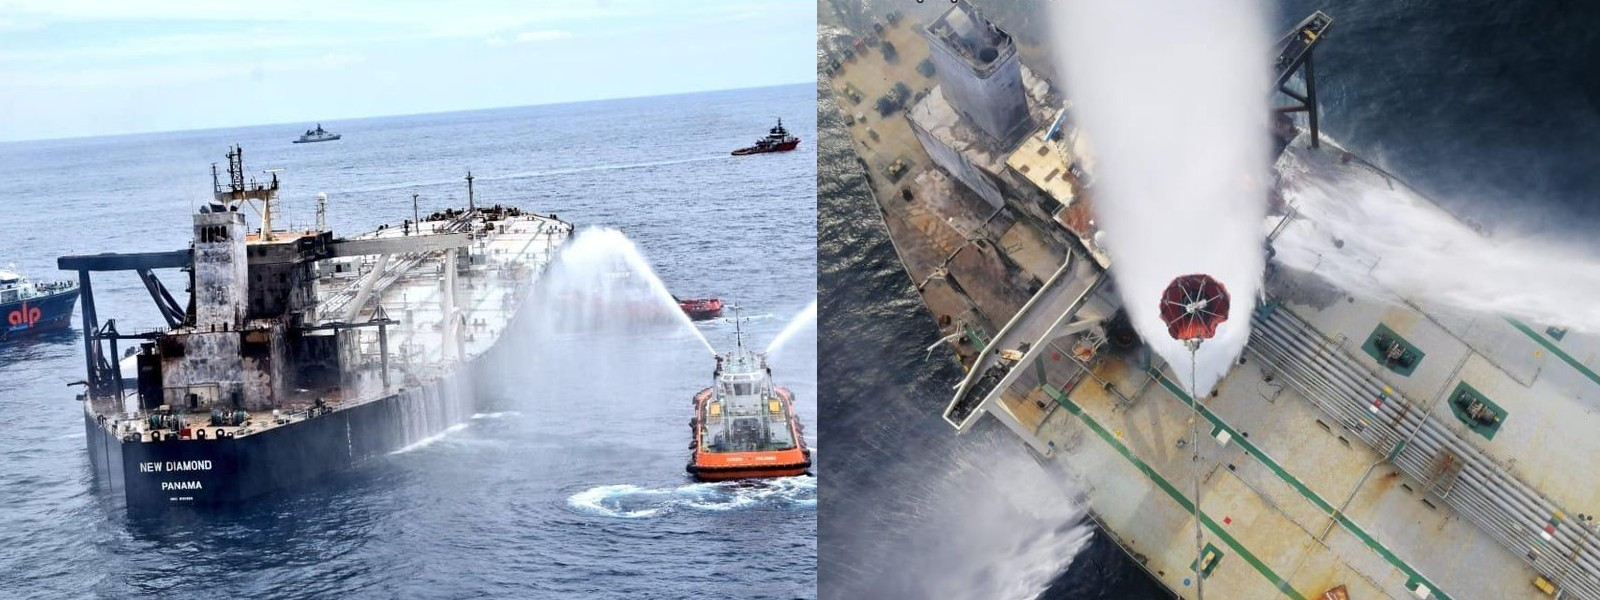 MT New Diamond salvage operations are currently underway – SL Navy